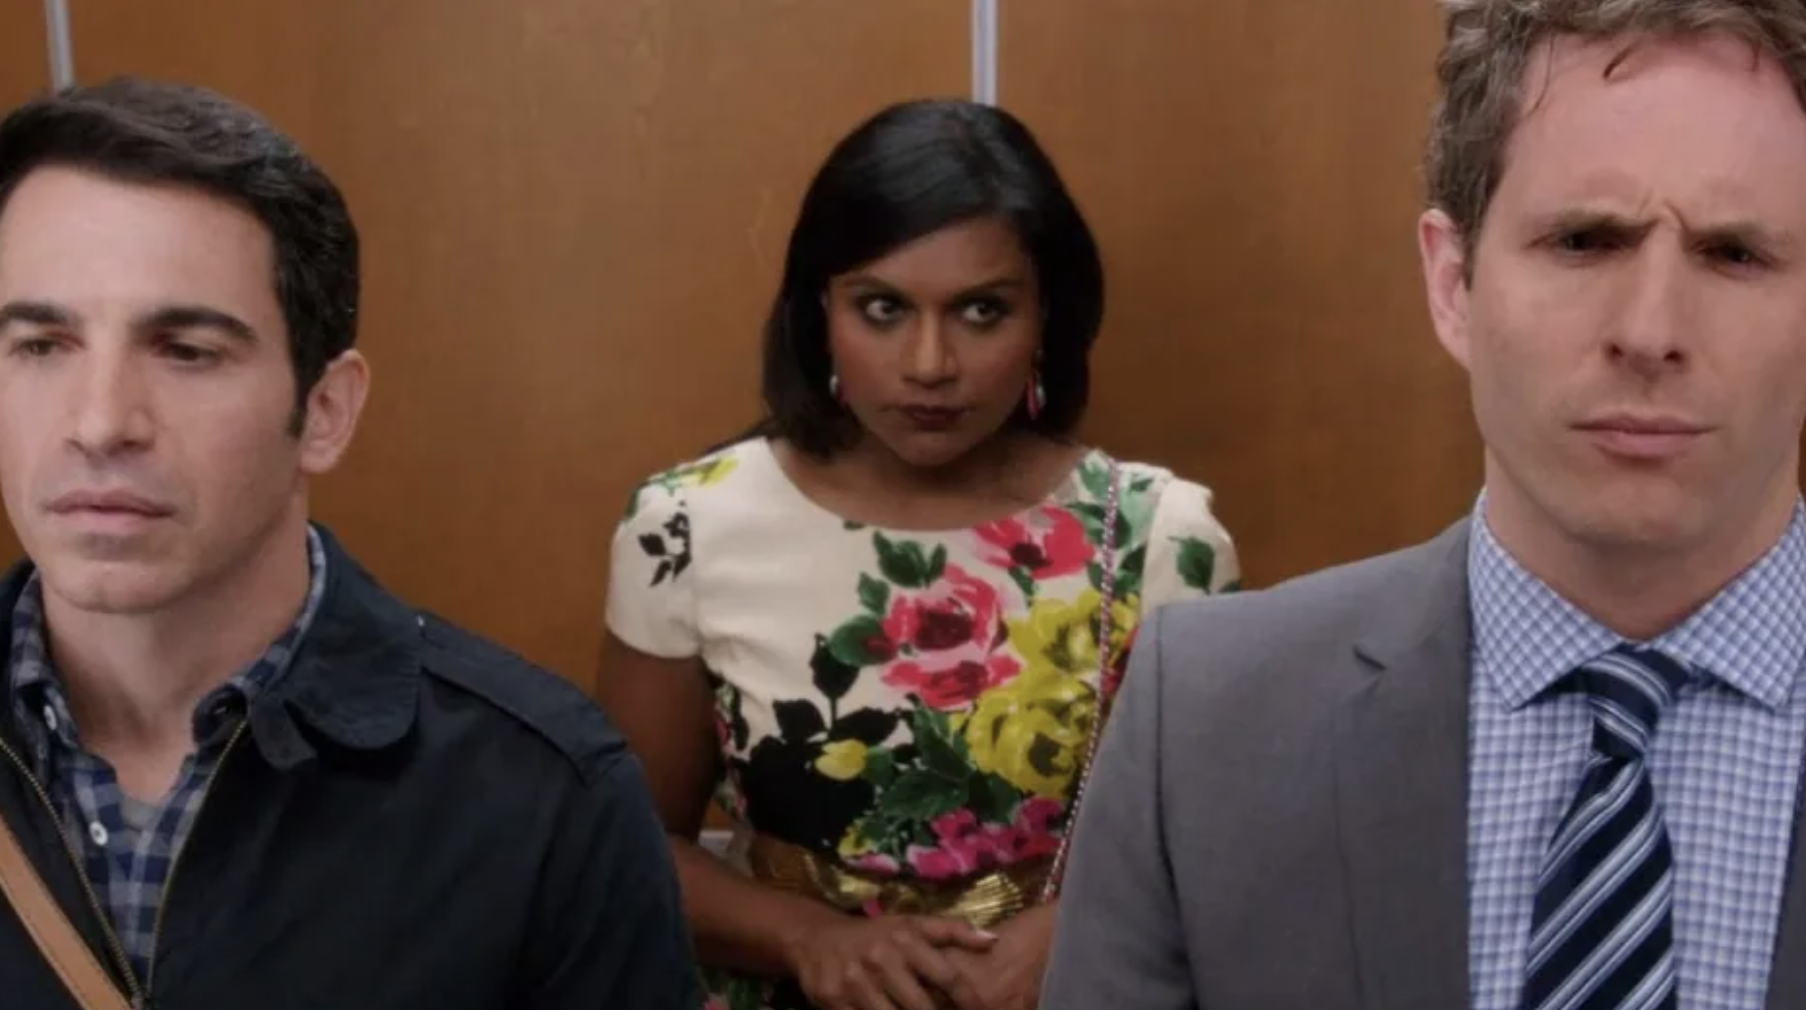 Mindy standing in an elevator with Danny and Cliff